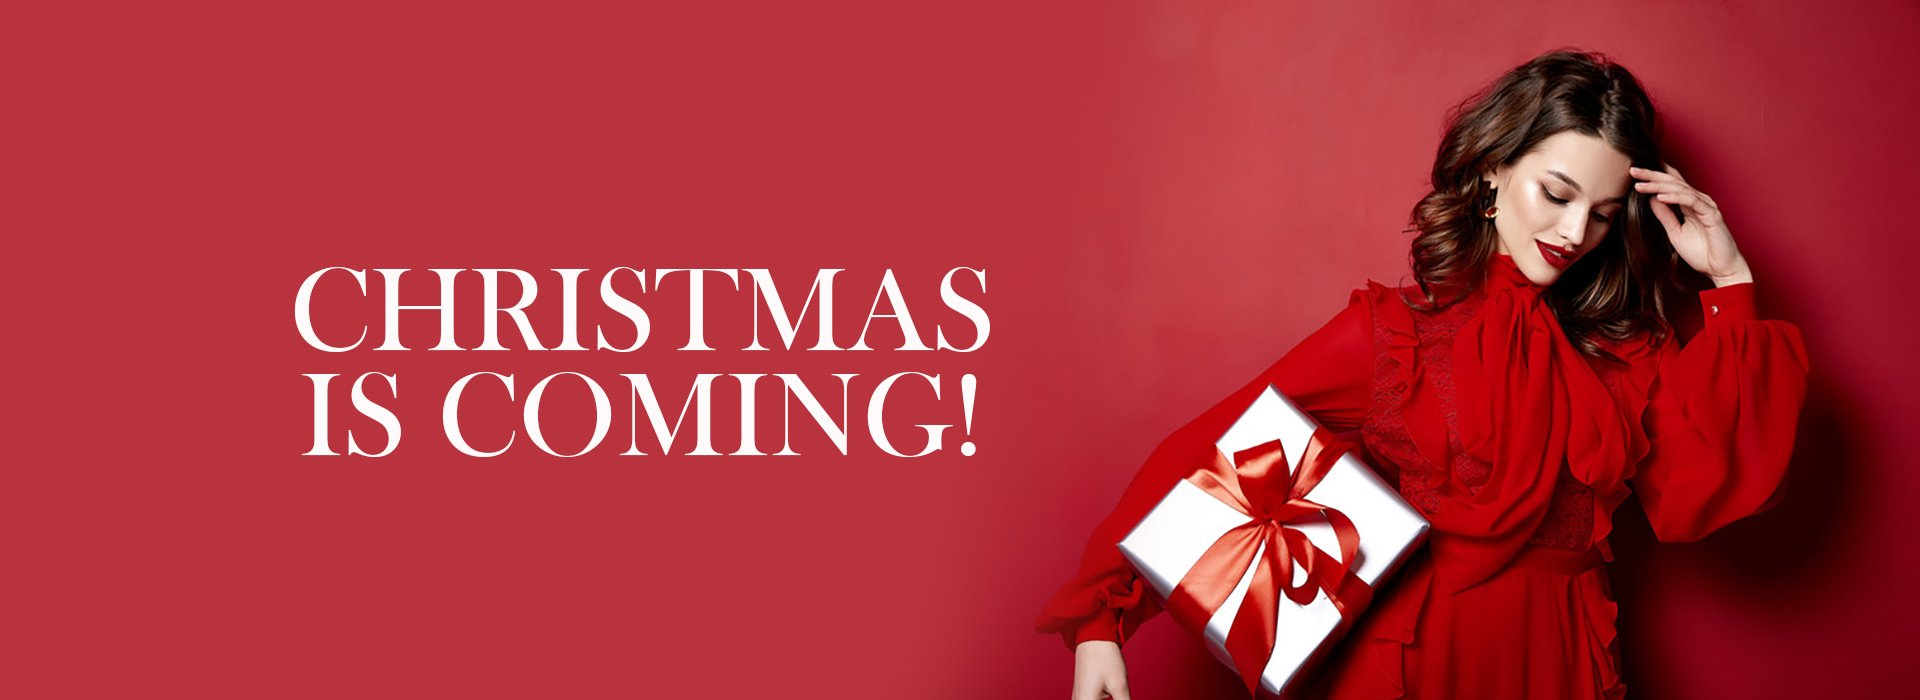 Christmas Is Coming Lore Hairdressing Salon in North Baddlesley 2